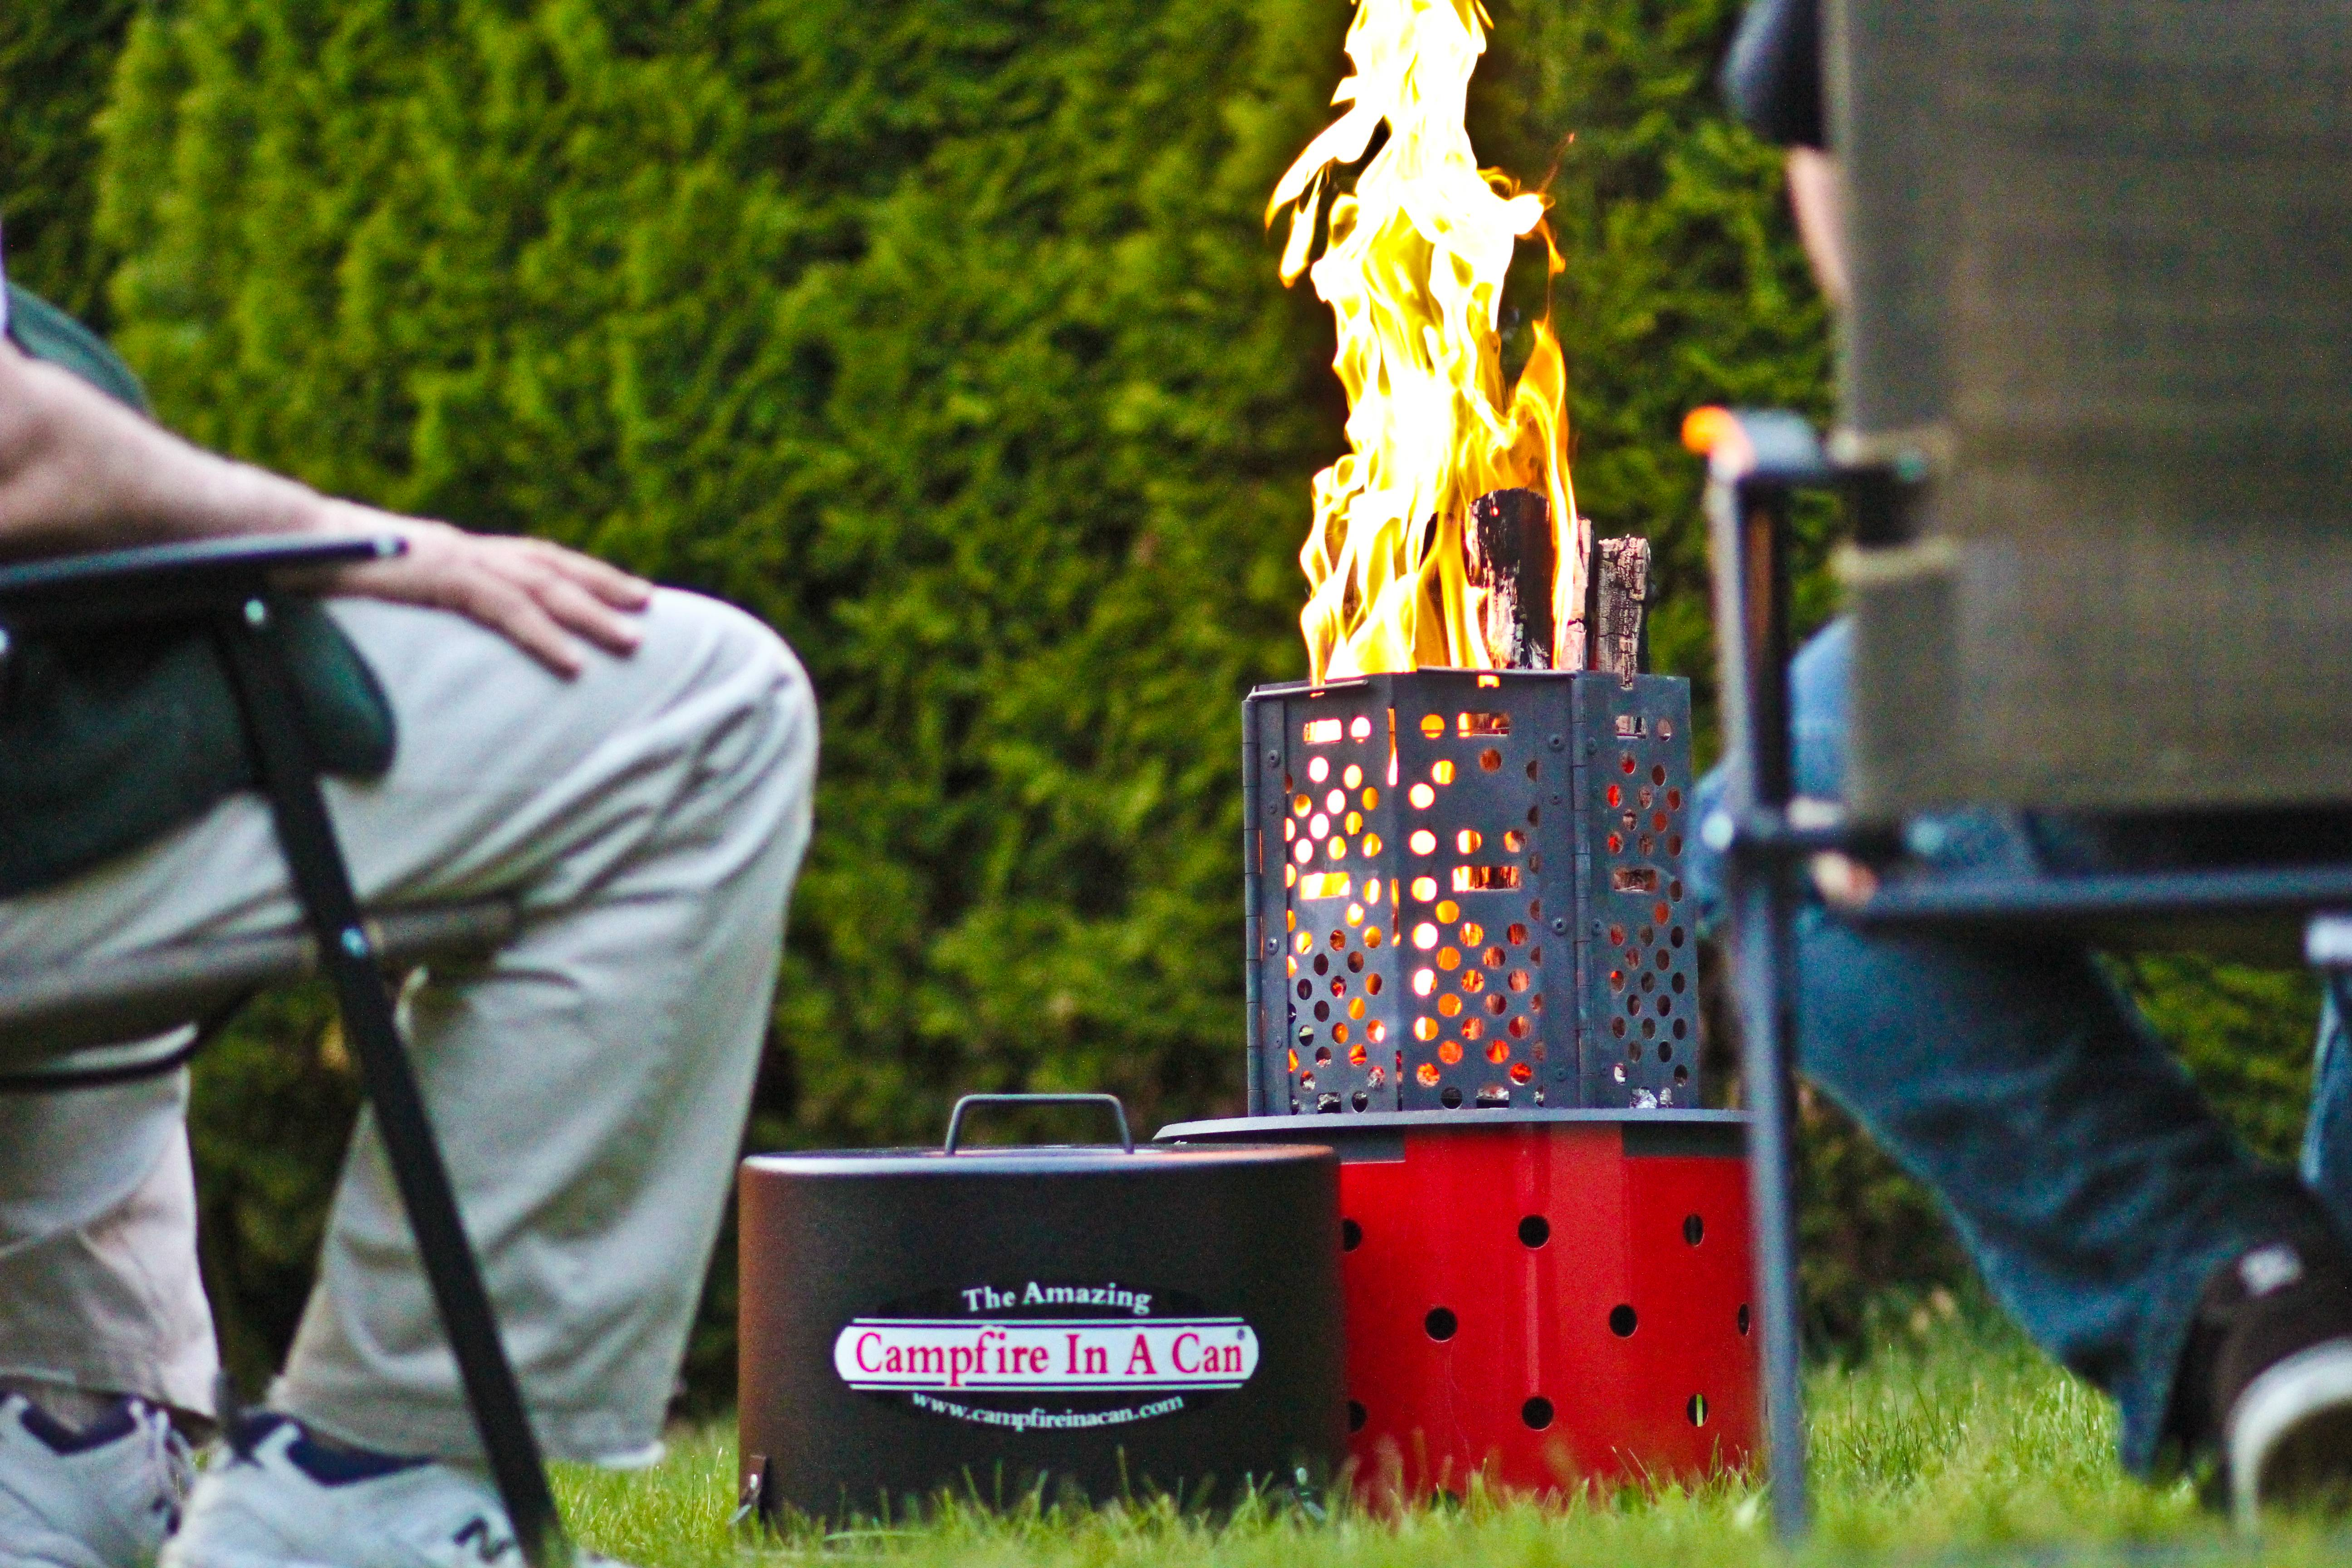 New Product Launch Campfire In A Can An Innovative Wood